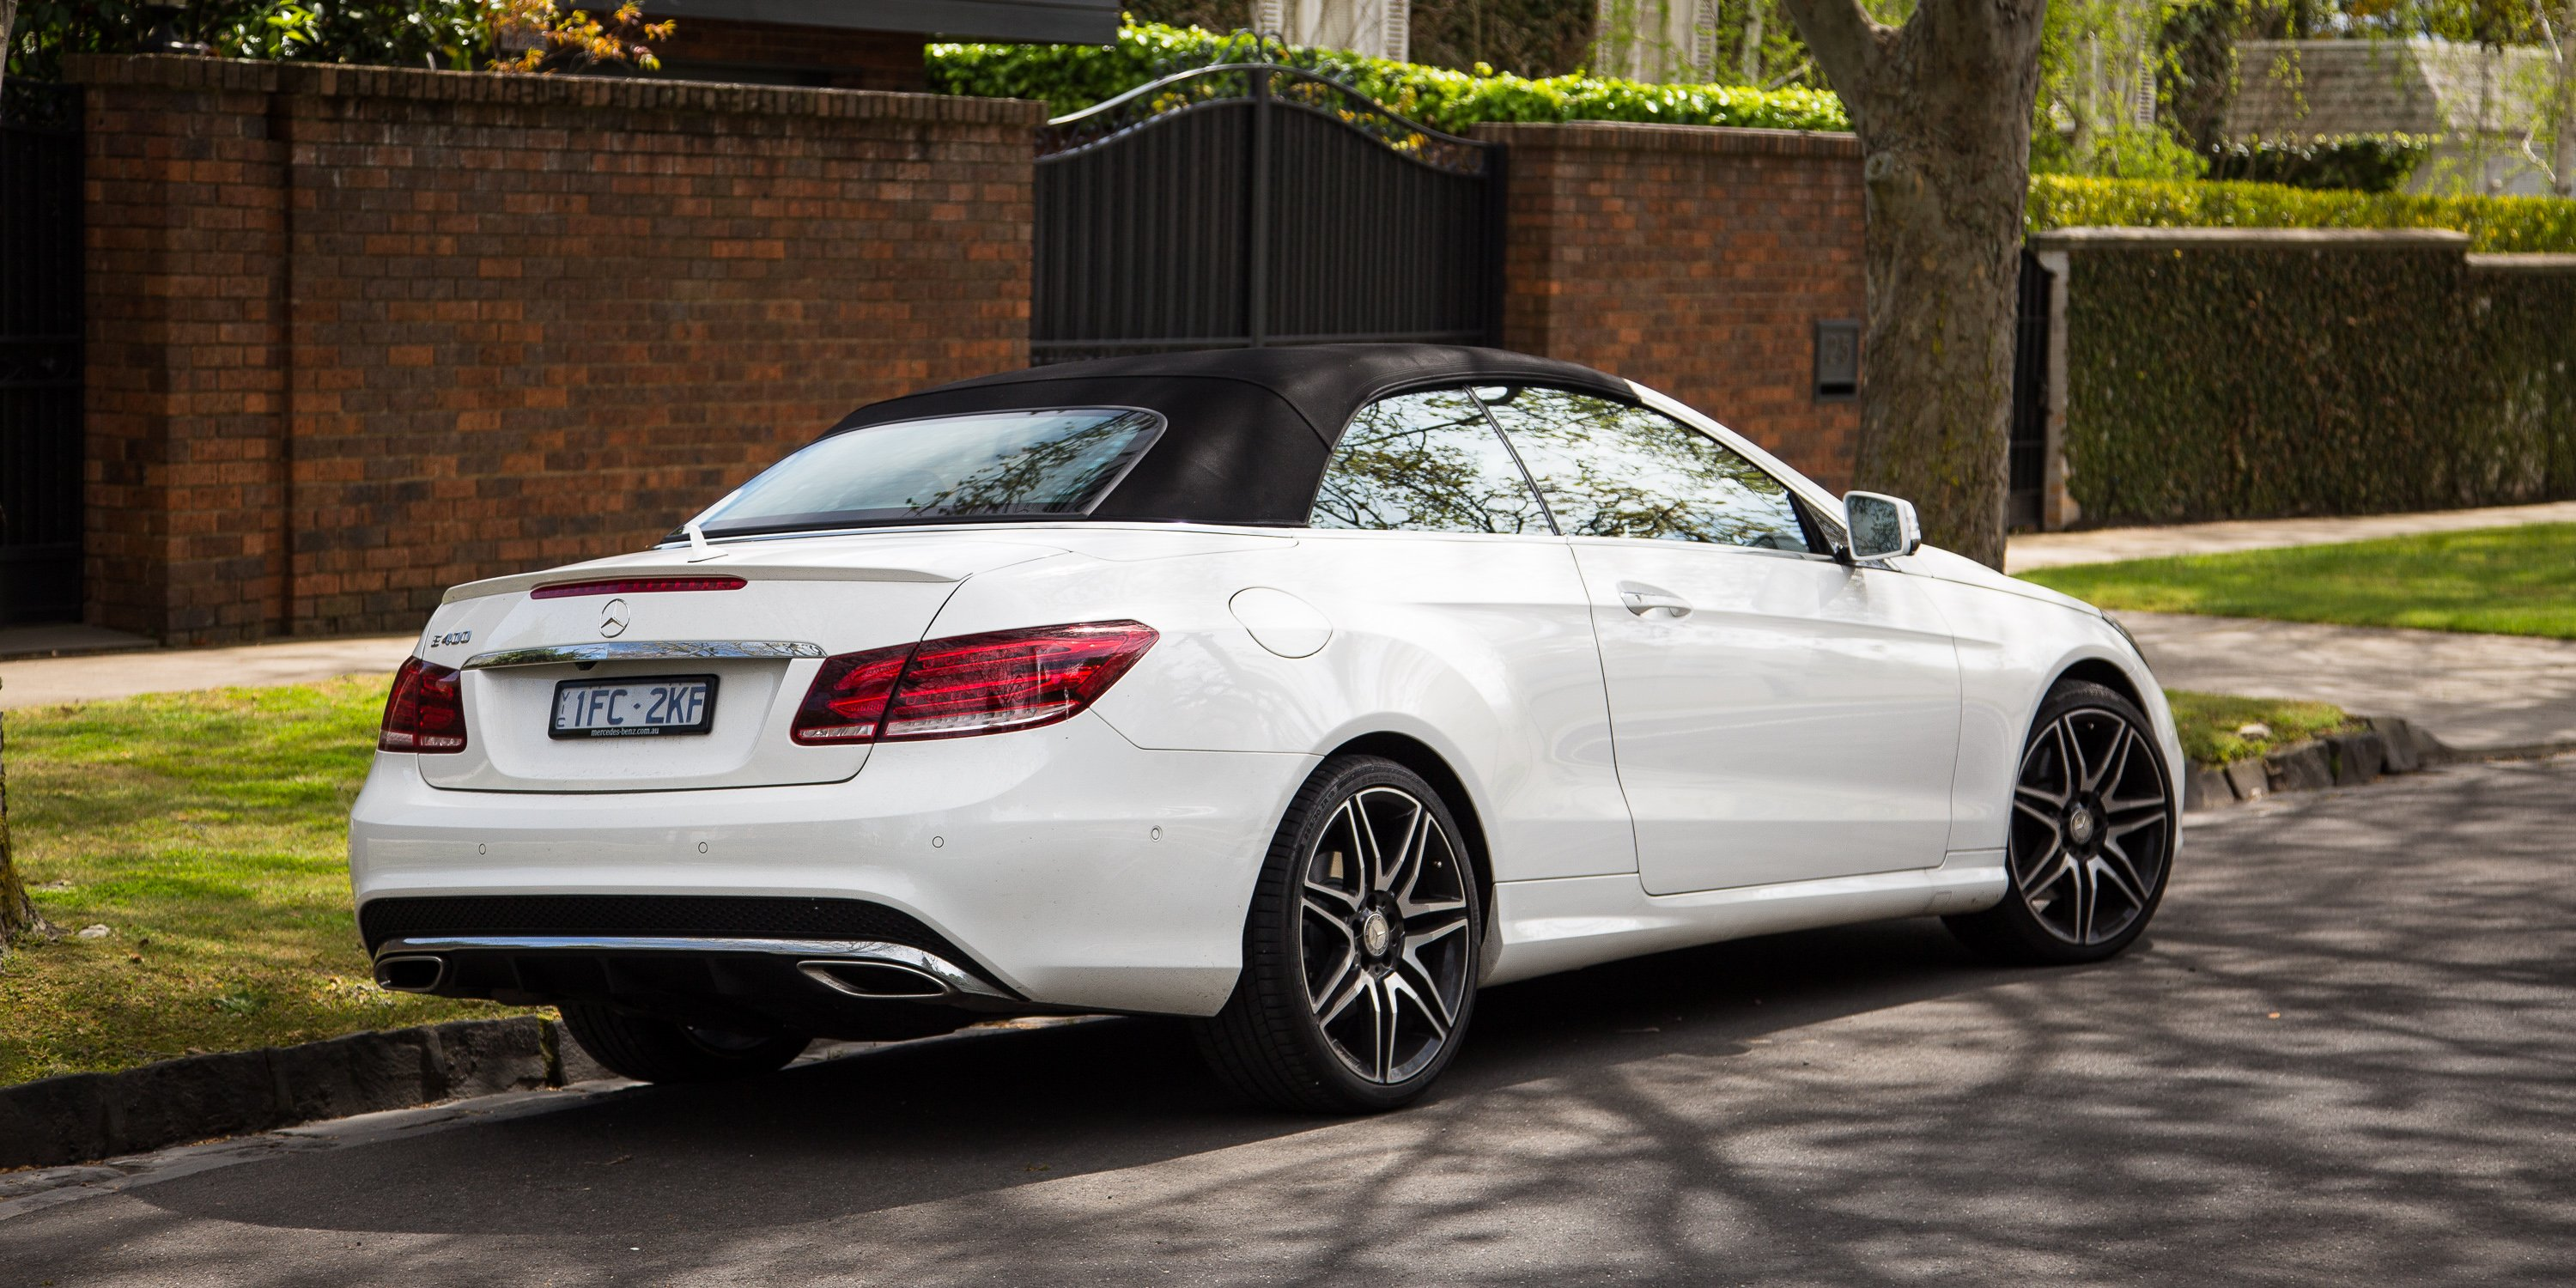 2016 mercedes benz e400 cabriolet review photos caradvice for Mercedes benz e350 cabriolet